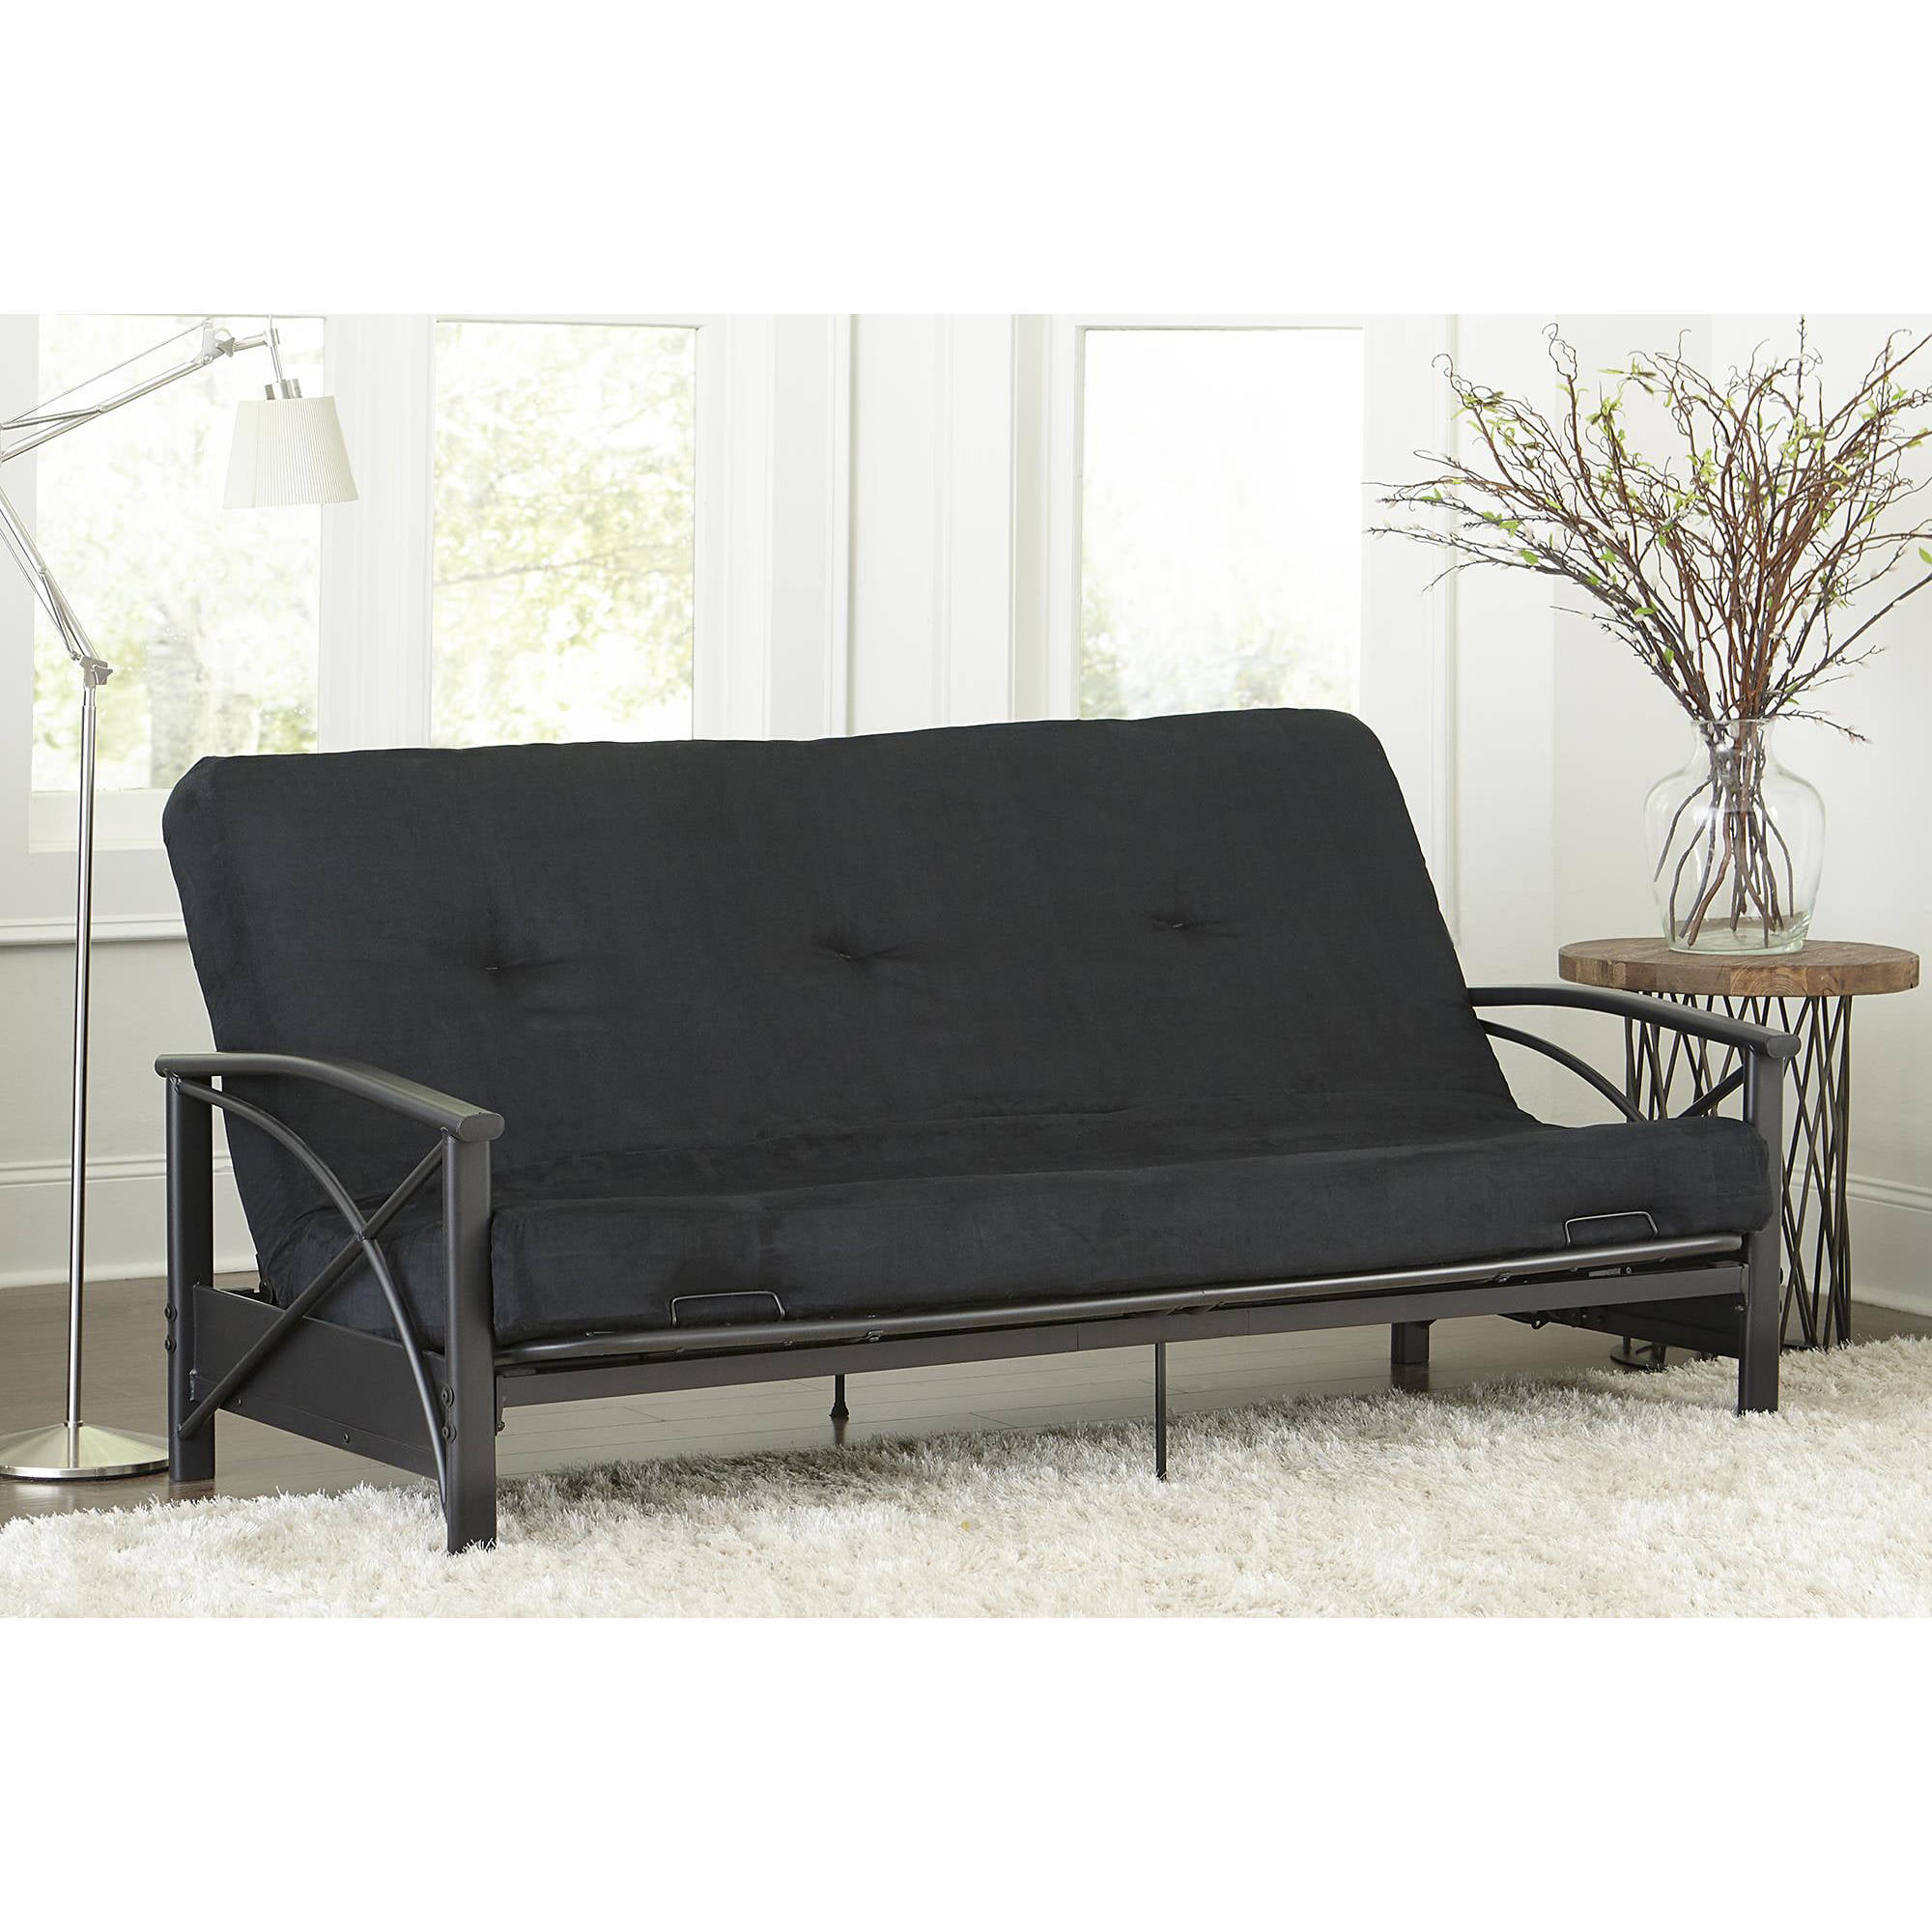 Mainstays Monaco Black Metal Futon with 6 Mattress Walmartcom